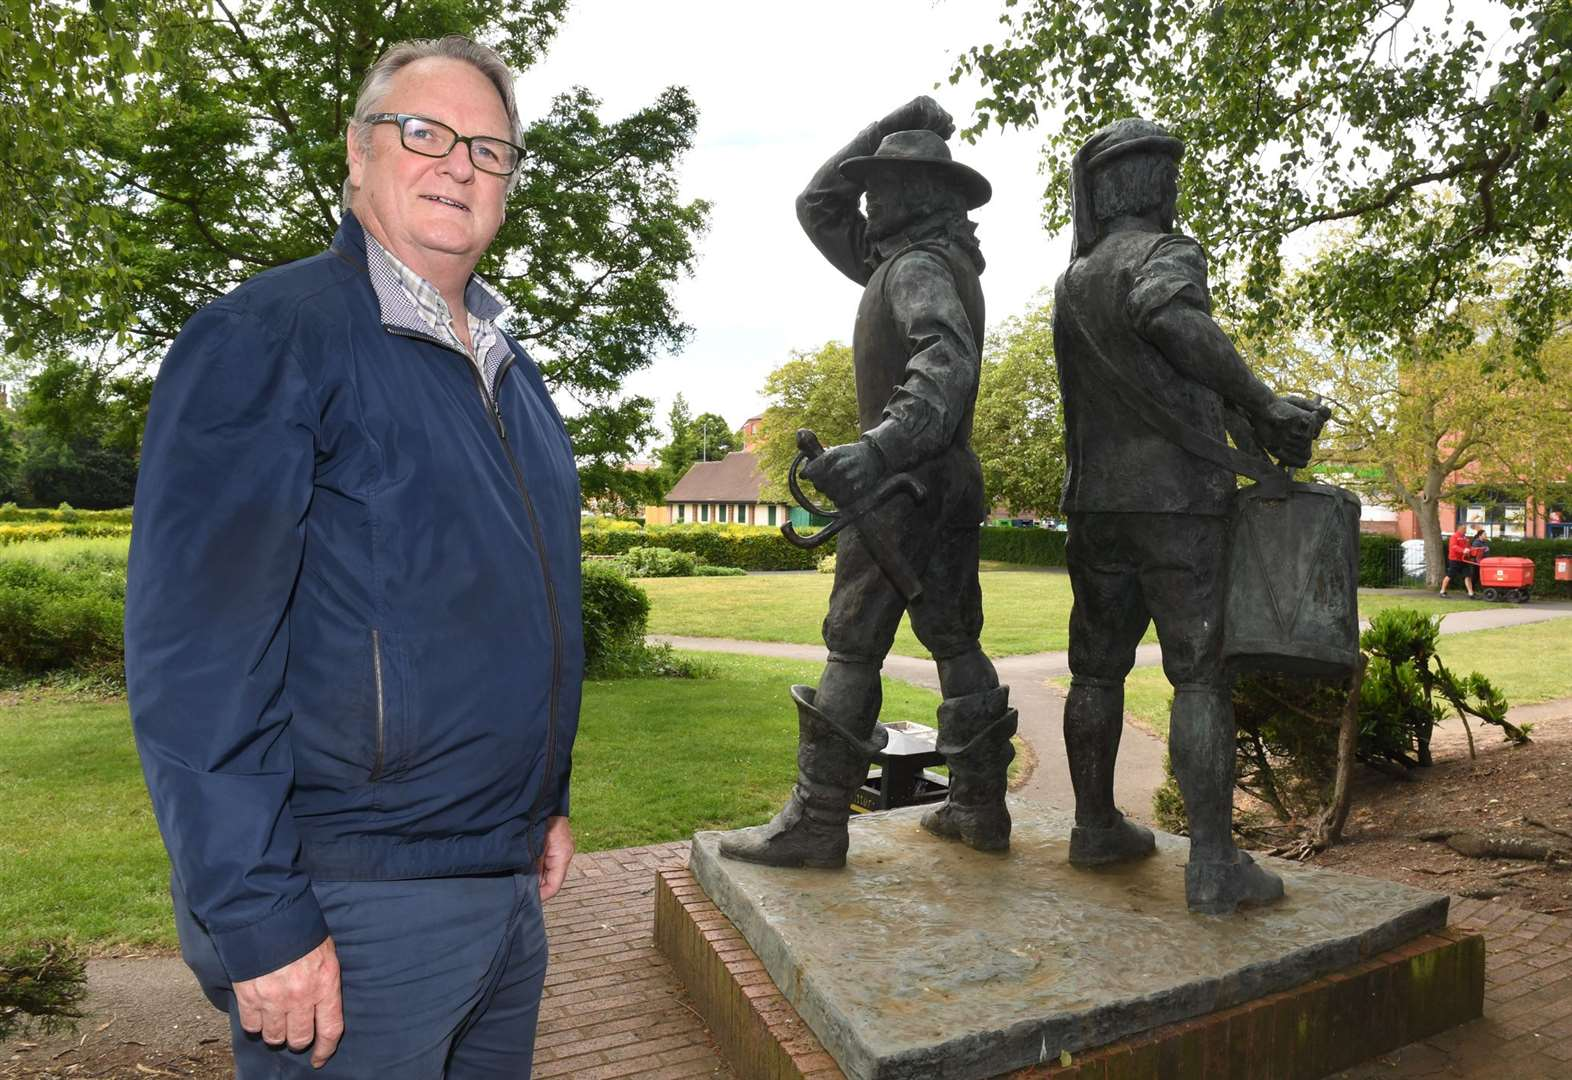 Civil war statue to move to town centre roundabout in October